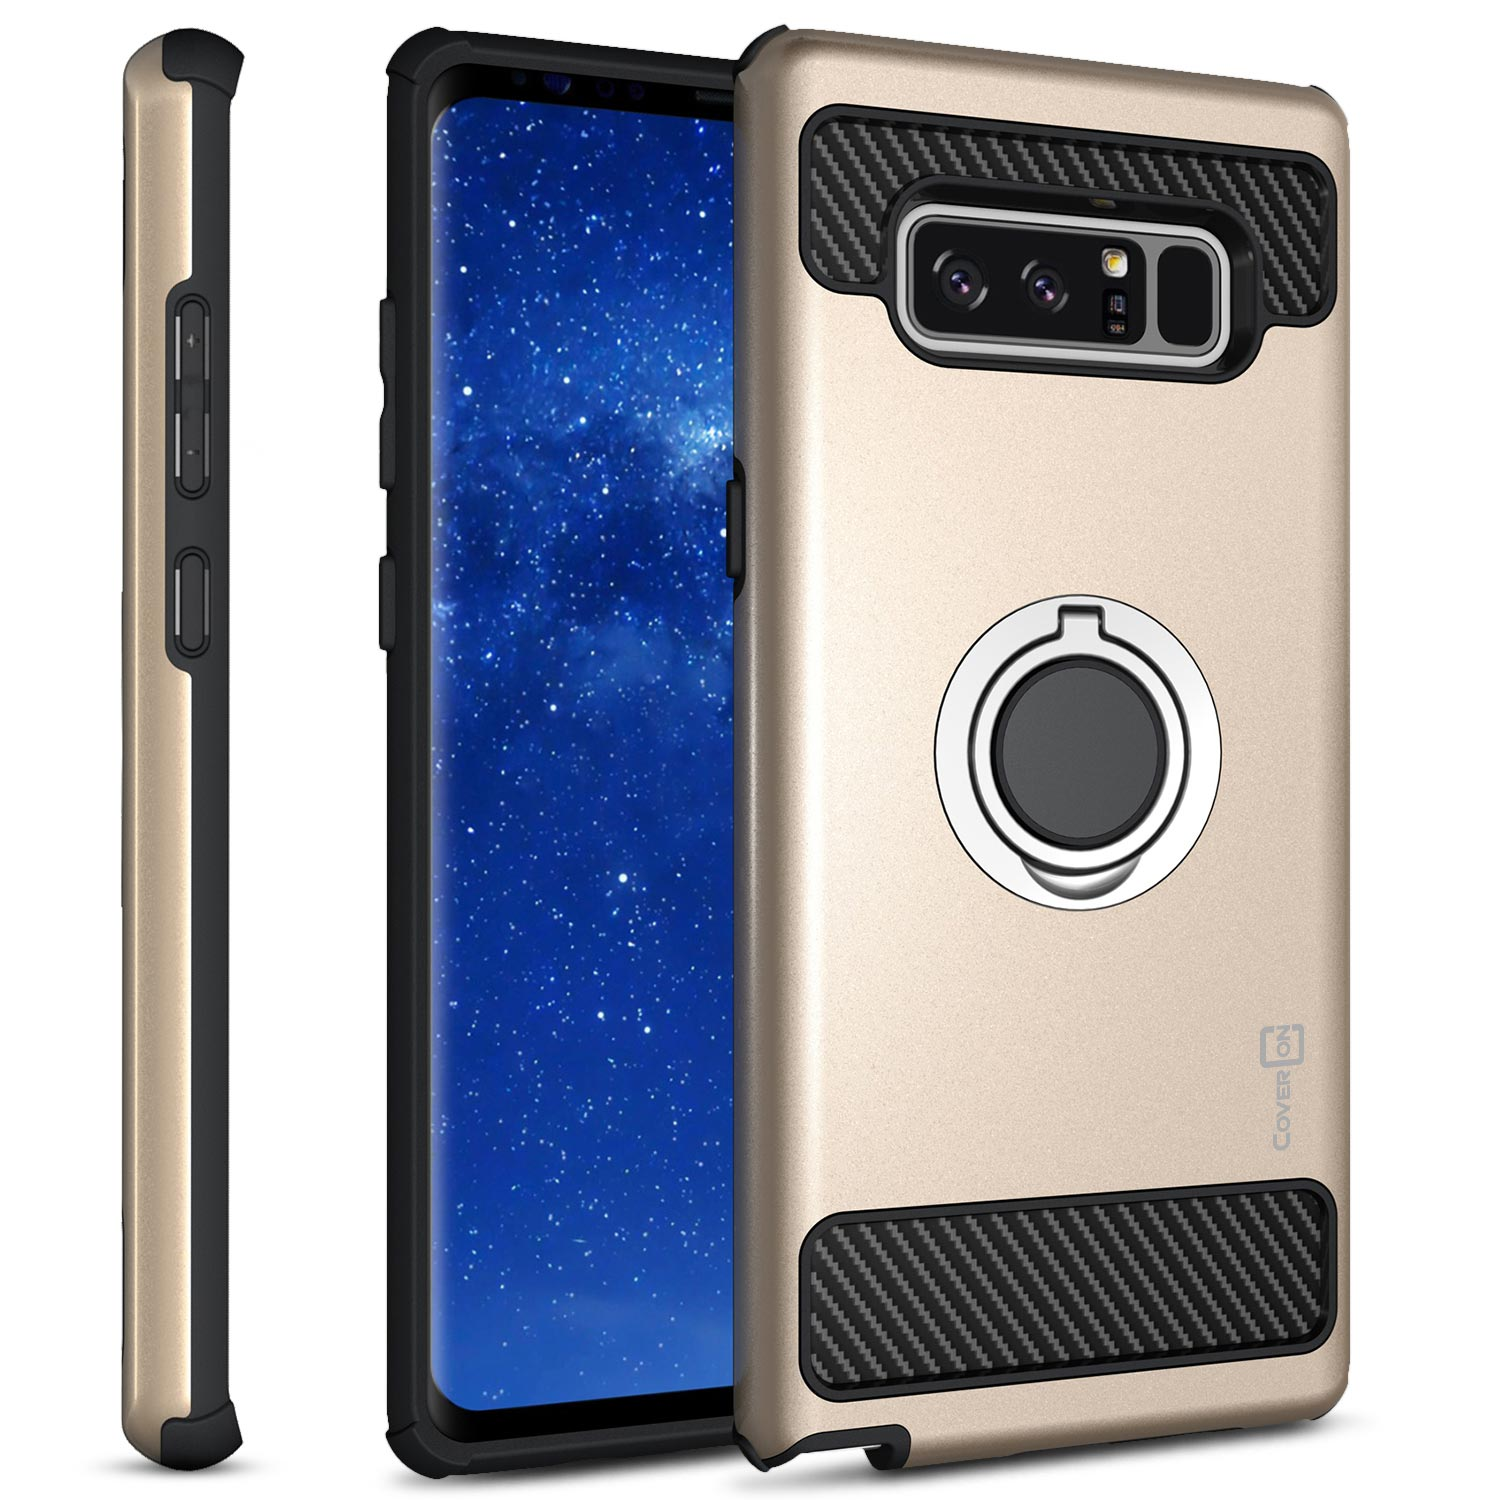 CoverON Samsung Galaxy Note 8 Case, RingCase Series Hybrid Kickstand Phone Cover